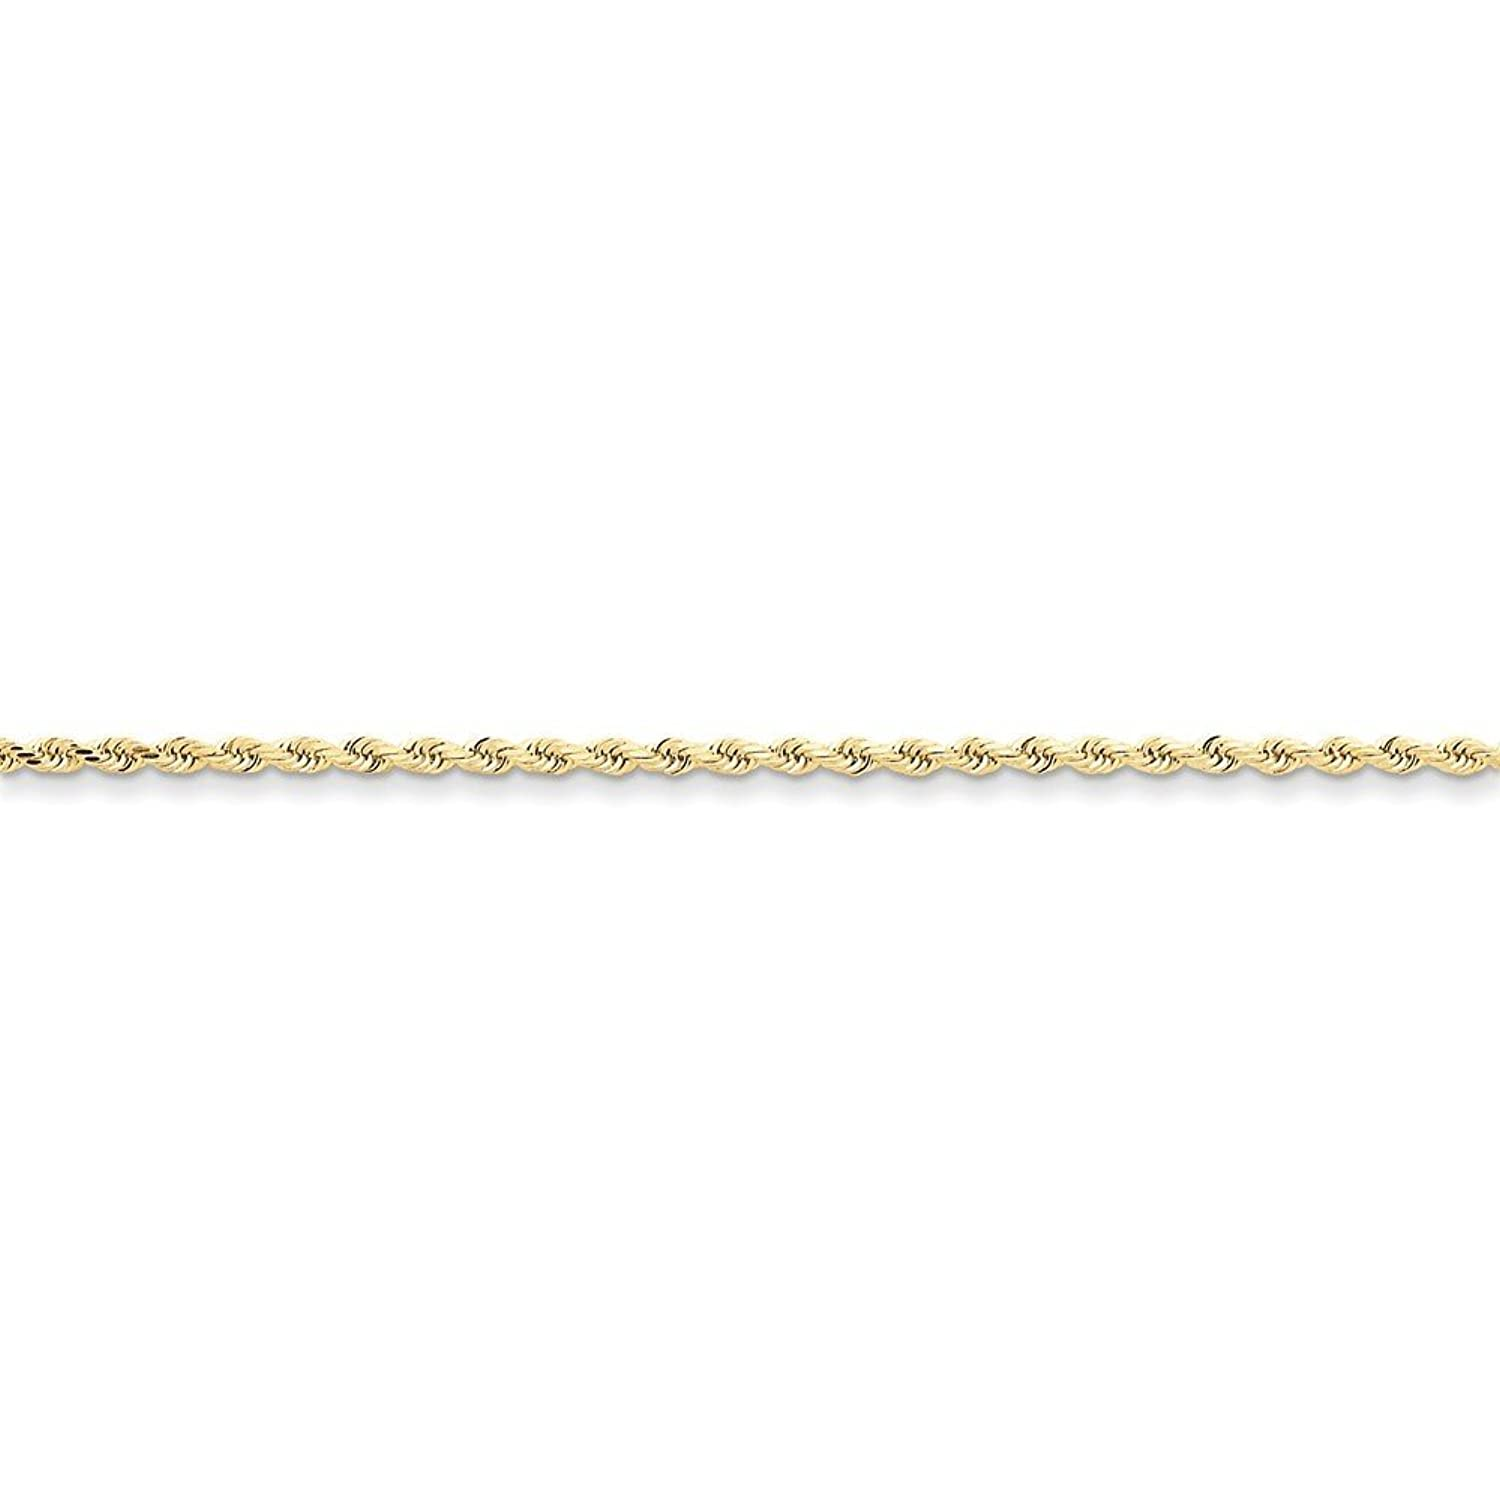 10K Yellow Gold 2.25mm Faceted-Cut Rope Chain Anklet, 9""